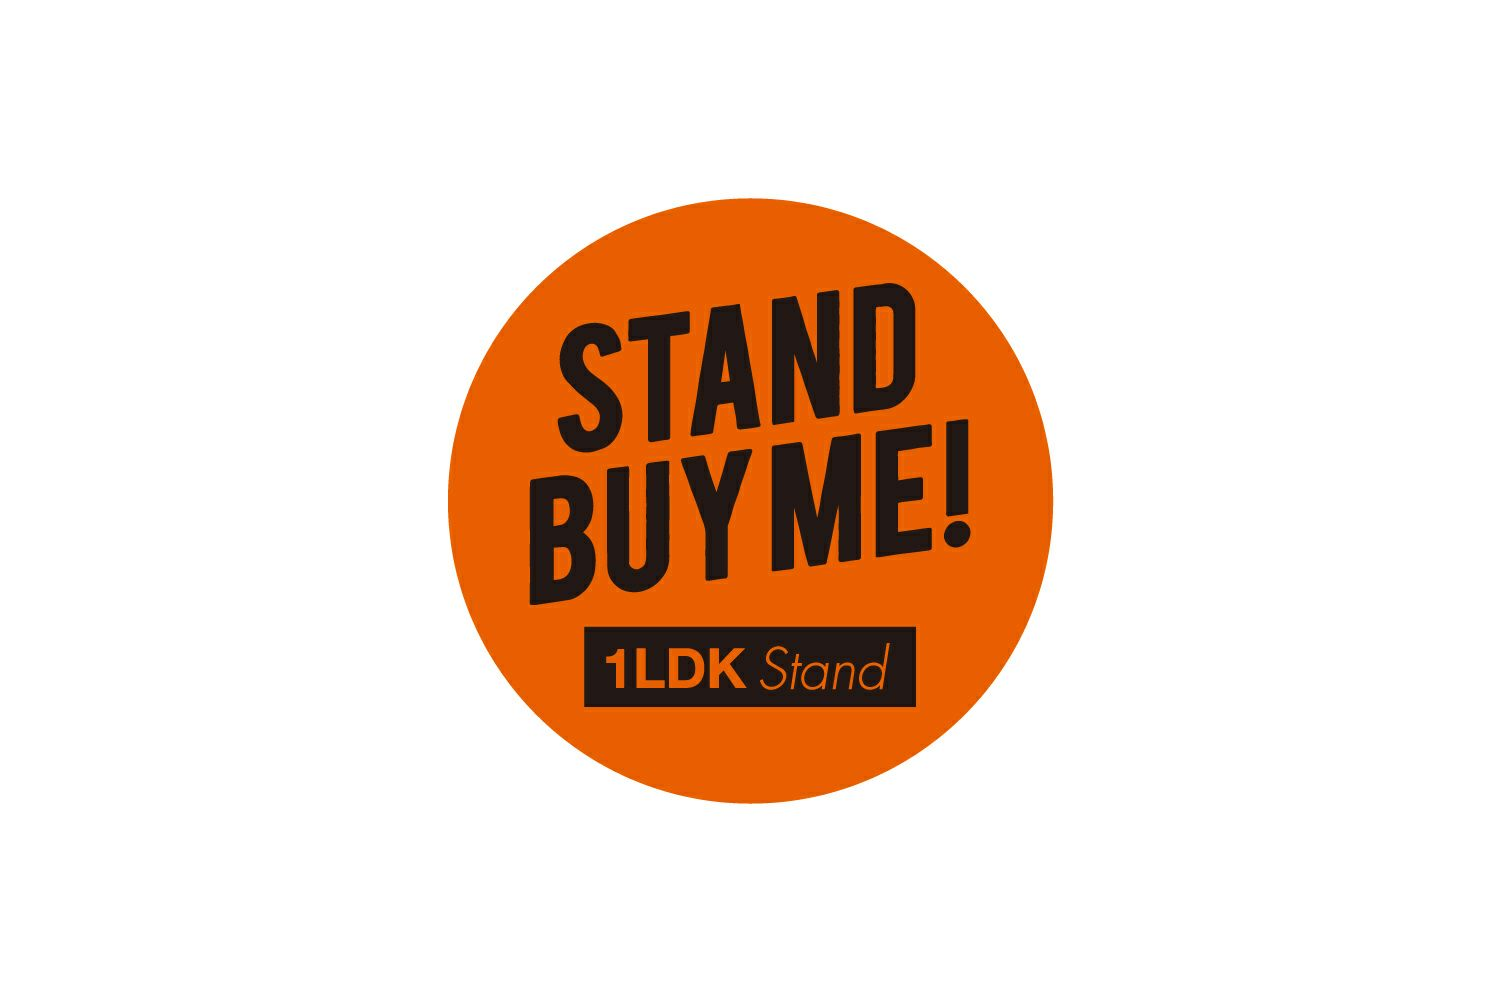 1LDK Stand